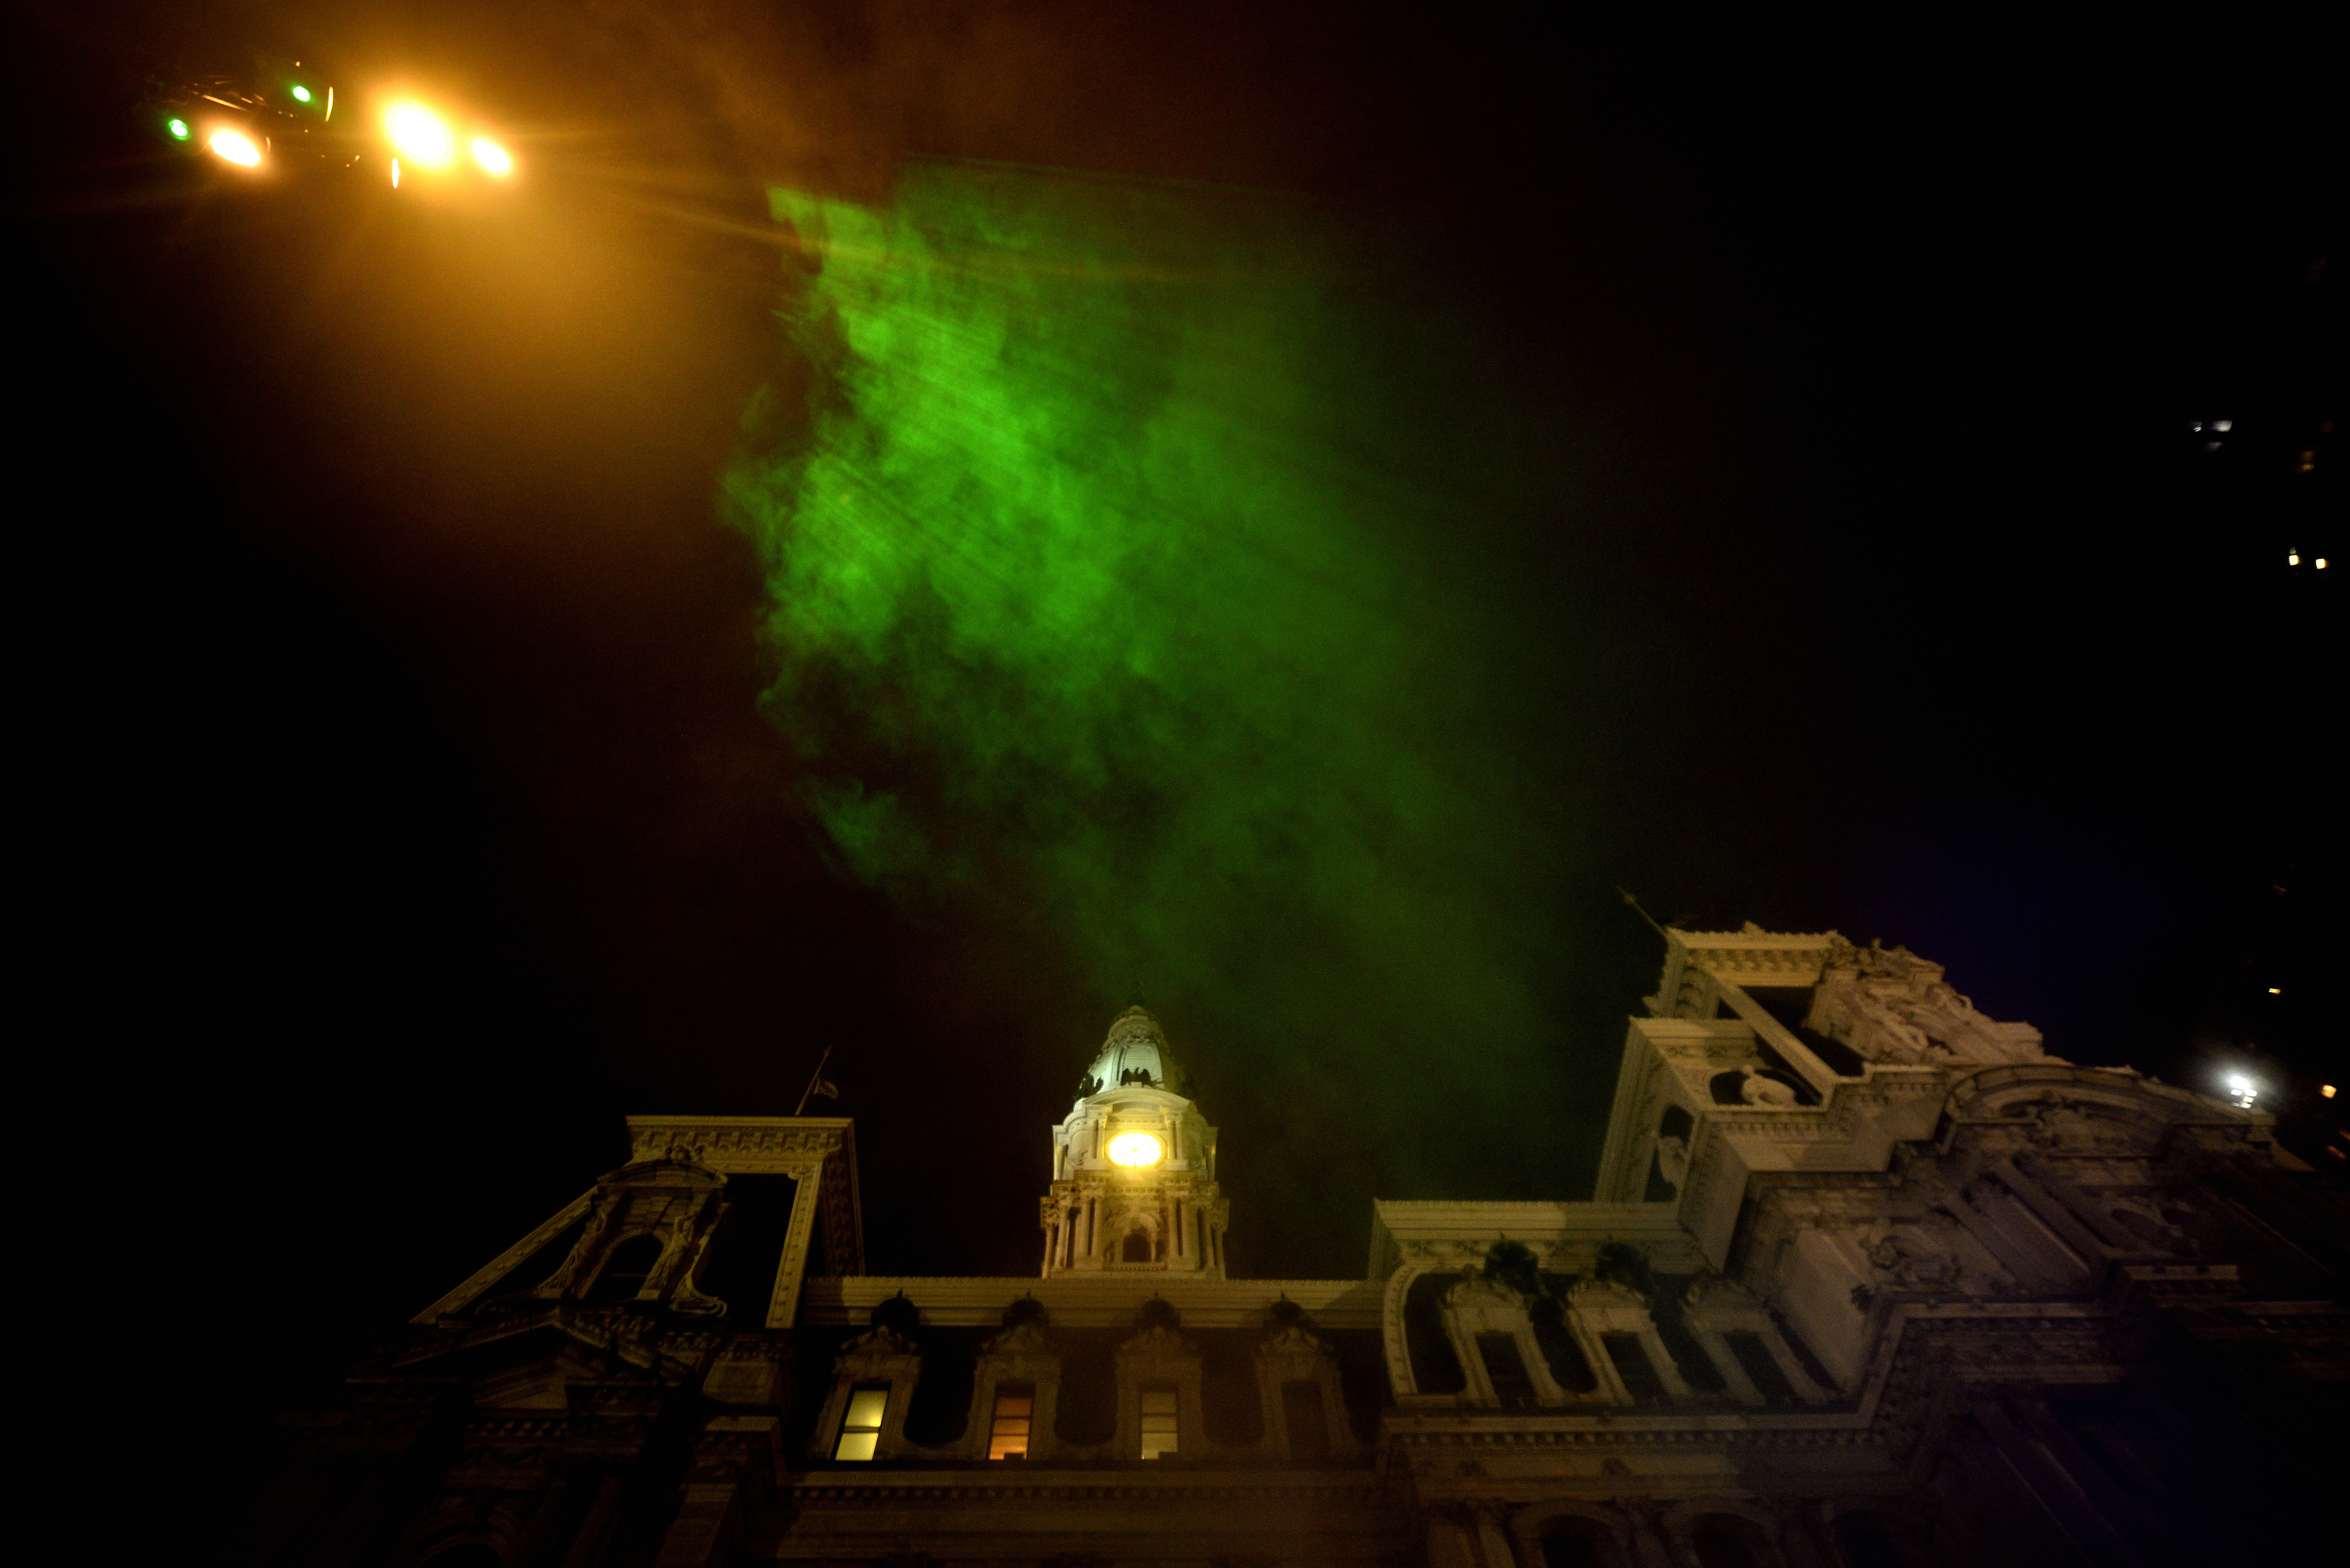 Mist catches green rays of light as it billows up towards the sky during the public unveiling of the first section of the site-specific art installation titled Pulse at the Dilworth Park's fountain, on Wednesday. (Bastiaan Slabbers for WHYY)